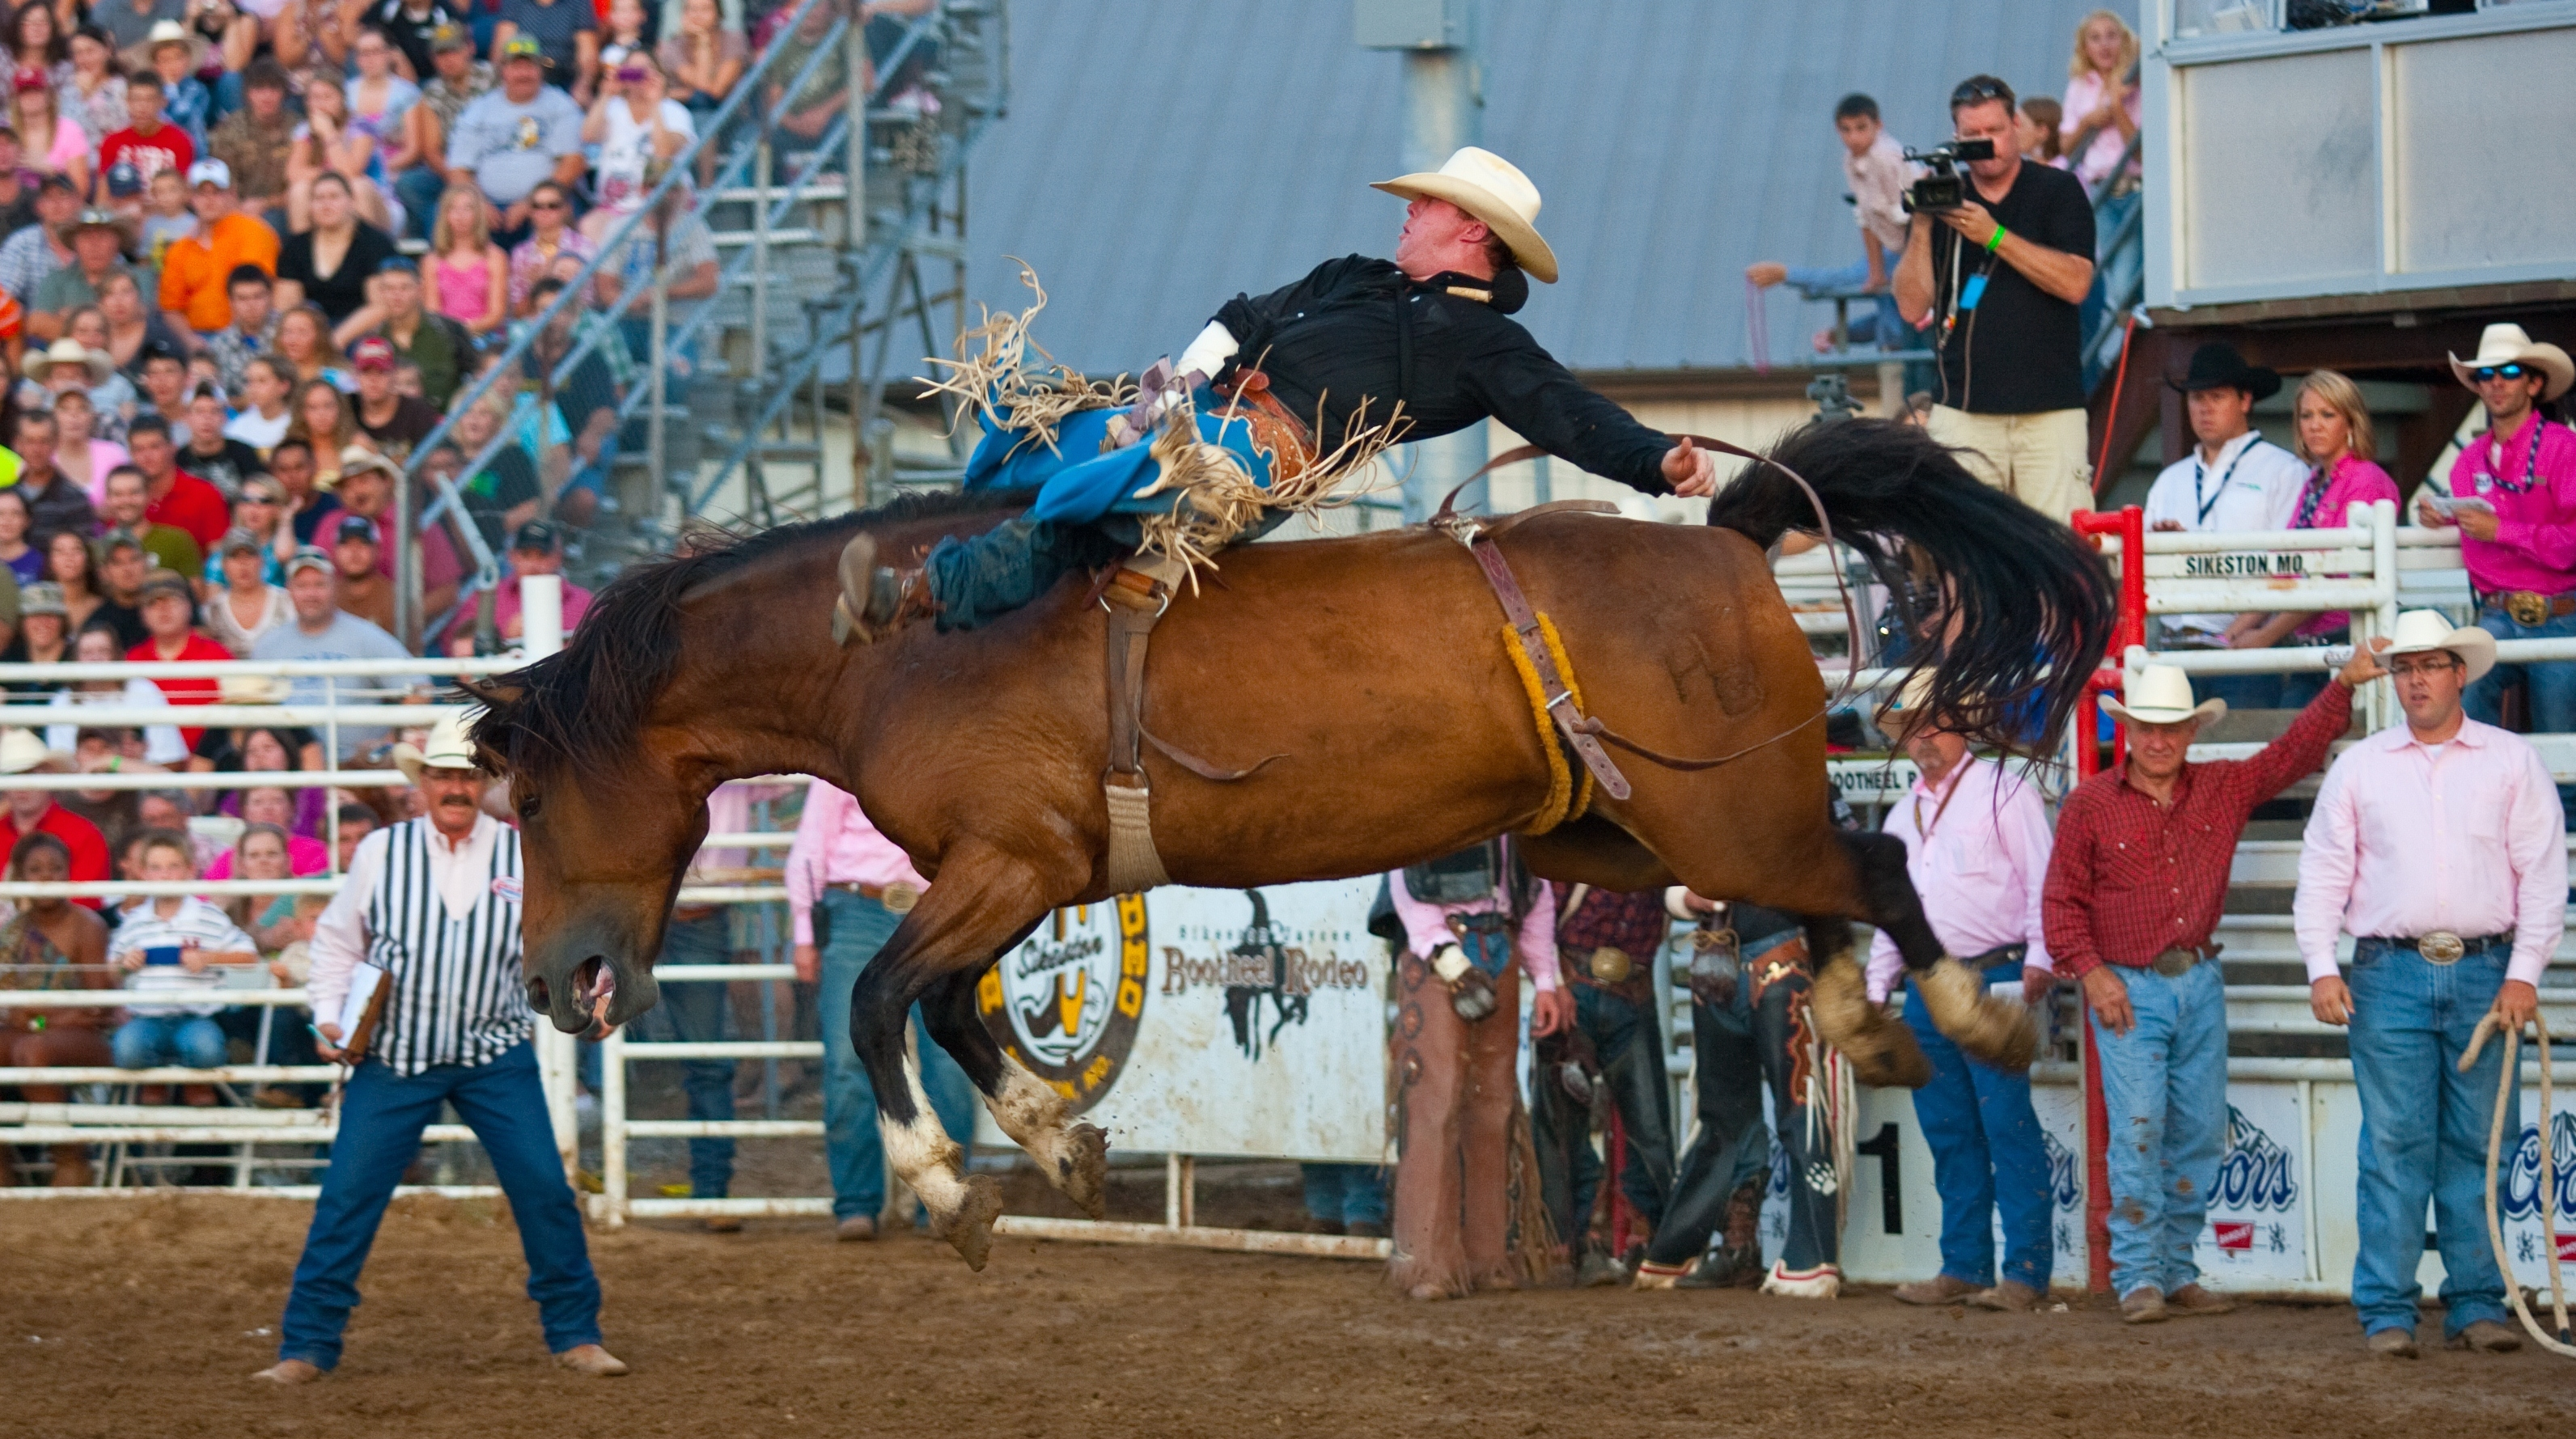 Saddle Up For Fun At Sikeston Jaycee Bootheel Rodeo